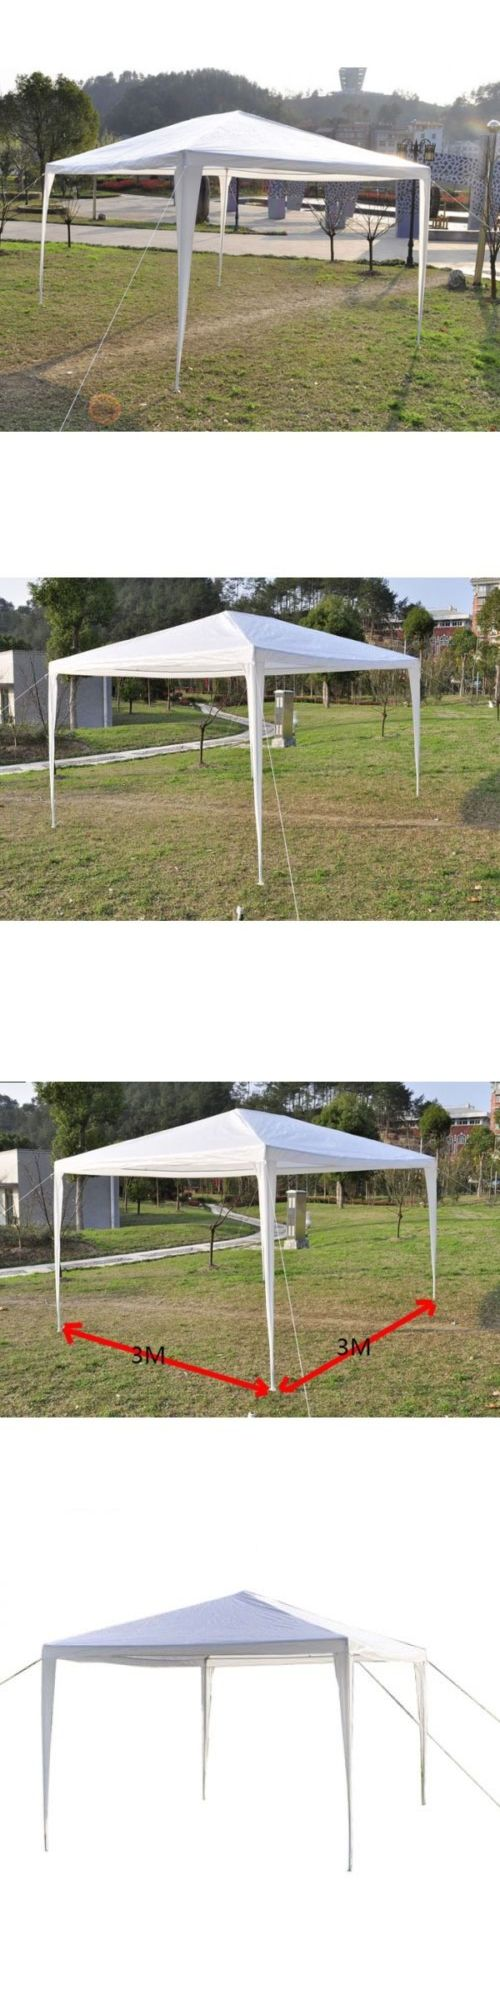 Marquees and Tents 180994: 10X10 Ez Pop Up Party Wedding Canopy Tent Outdoor Heavy Duty Gazebo Pavilion -> BUY IT NOW ONLY: $37.9 on eBay!